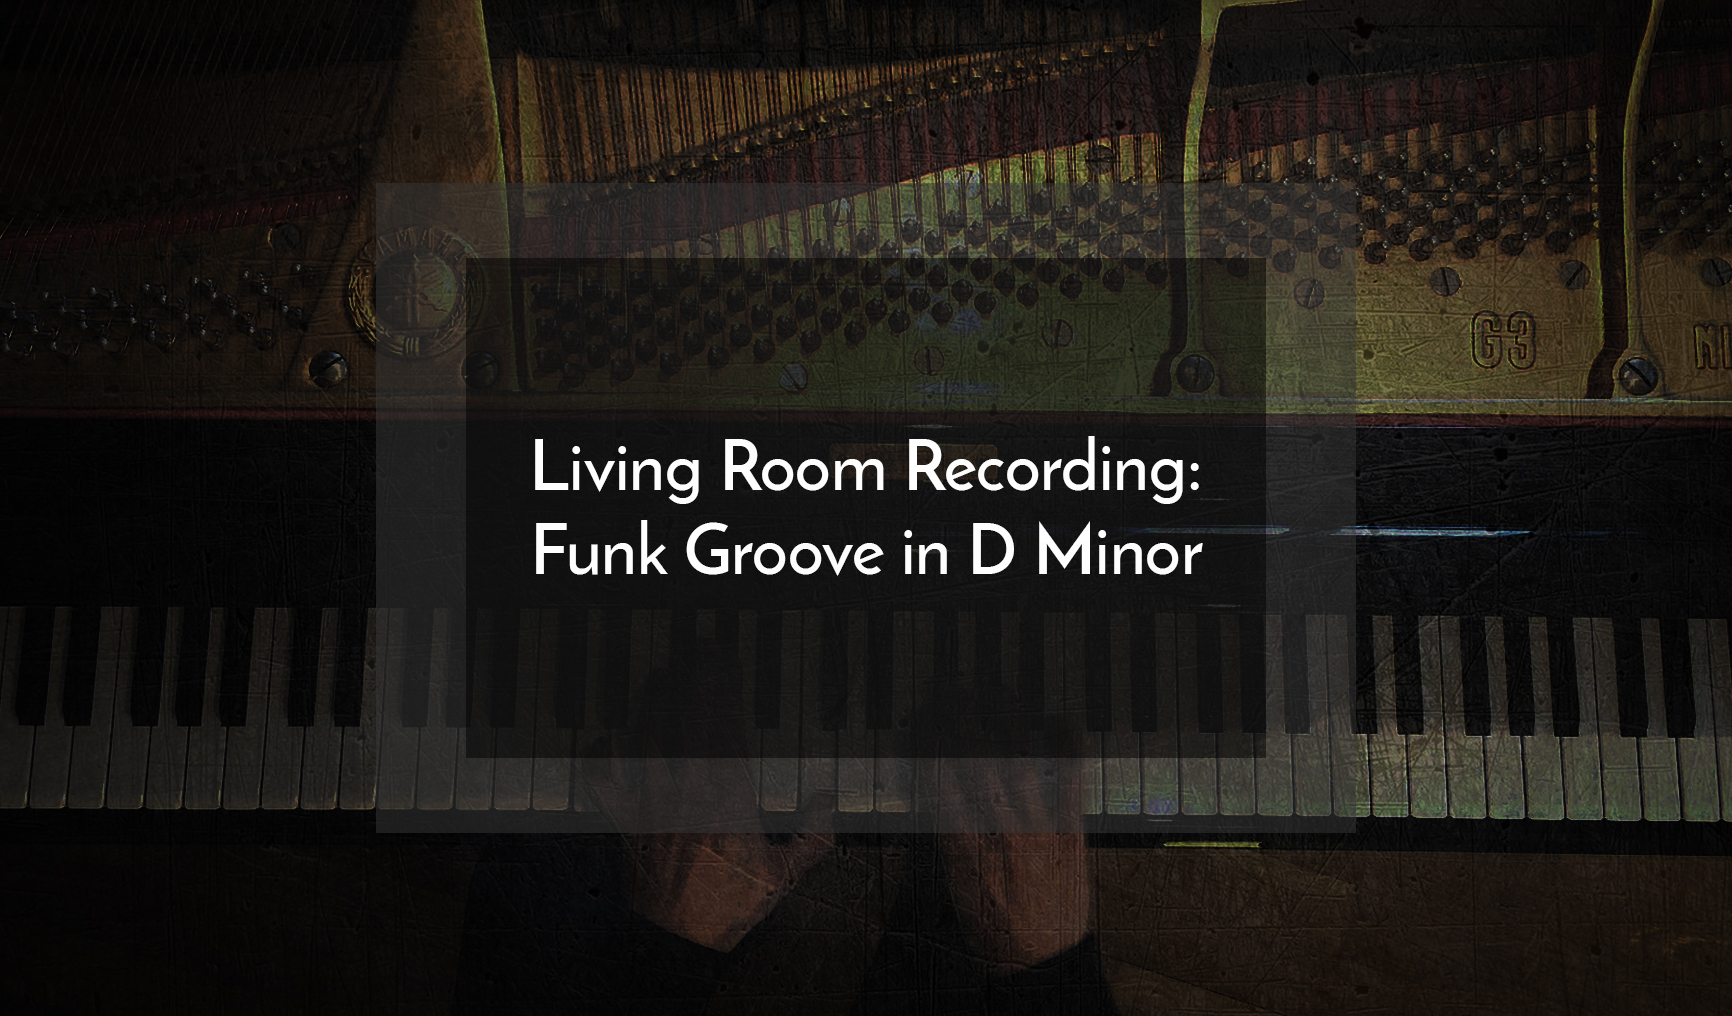 Living Room Recording: Funk Groove in D Minor